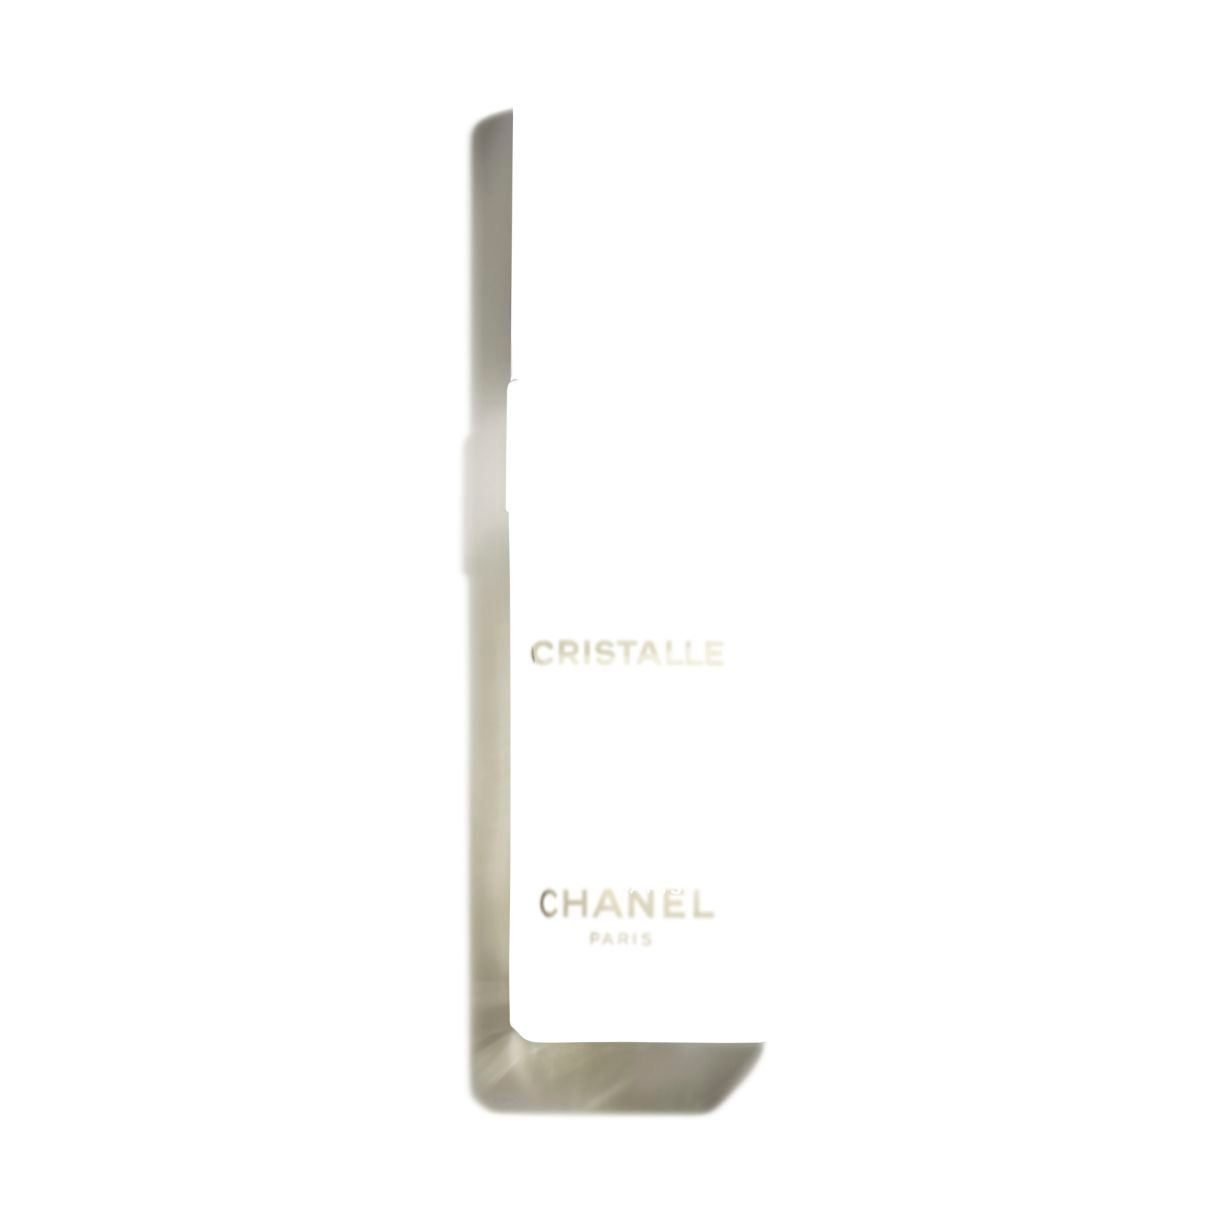 CRISTALLE EAU DE TOILETTE SPRAY 60ML